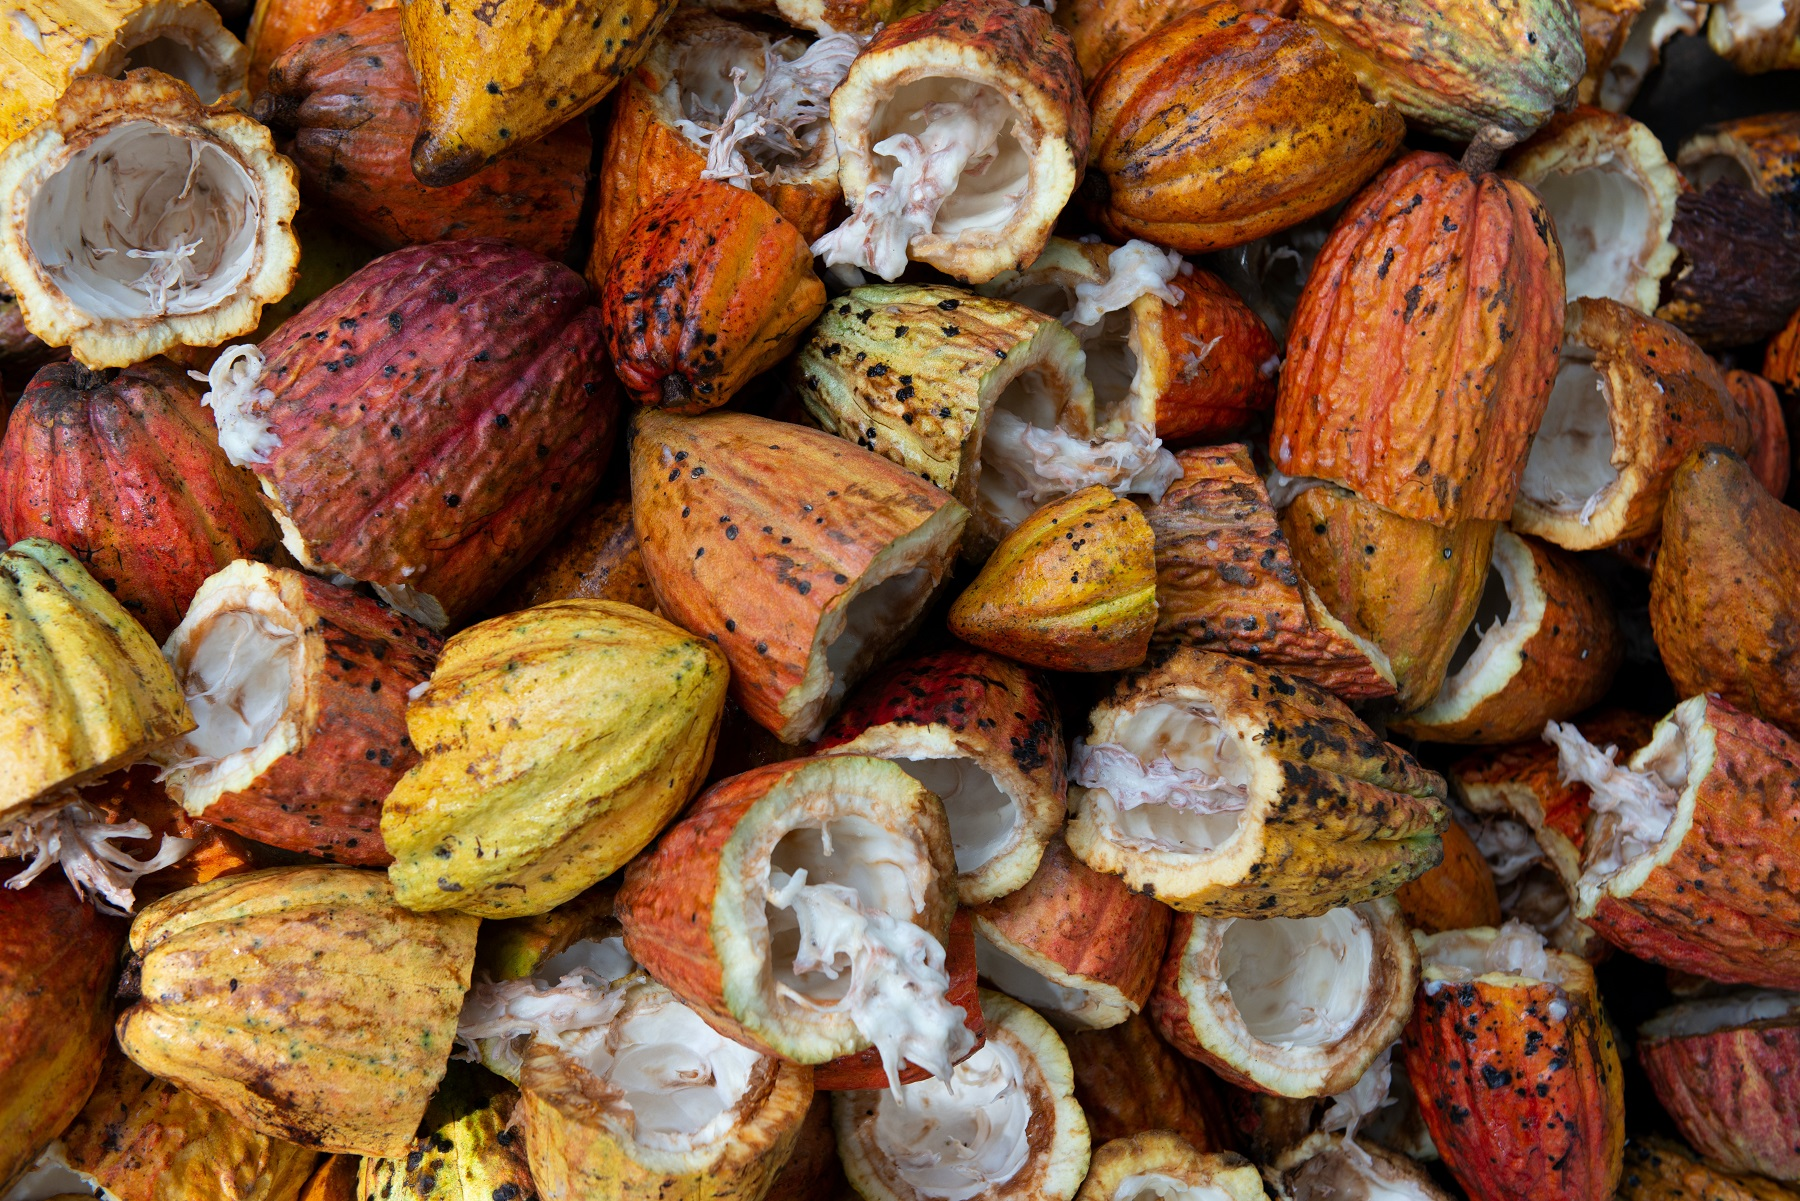 Cacao plantation tour in Honduras - chocolate attractions in the South